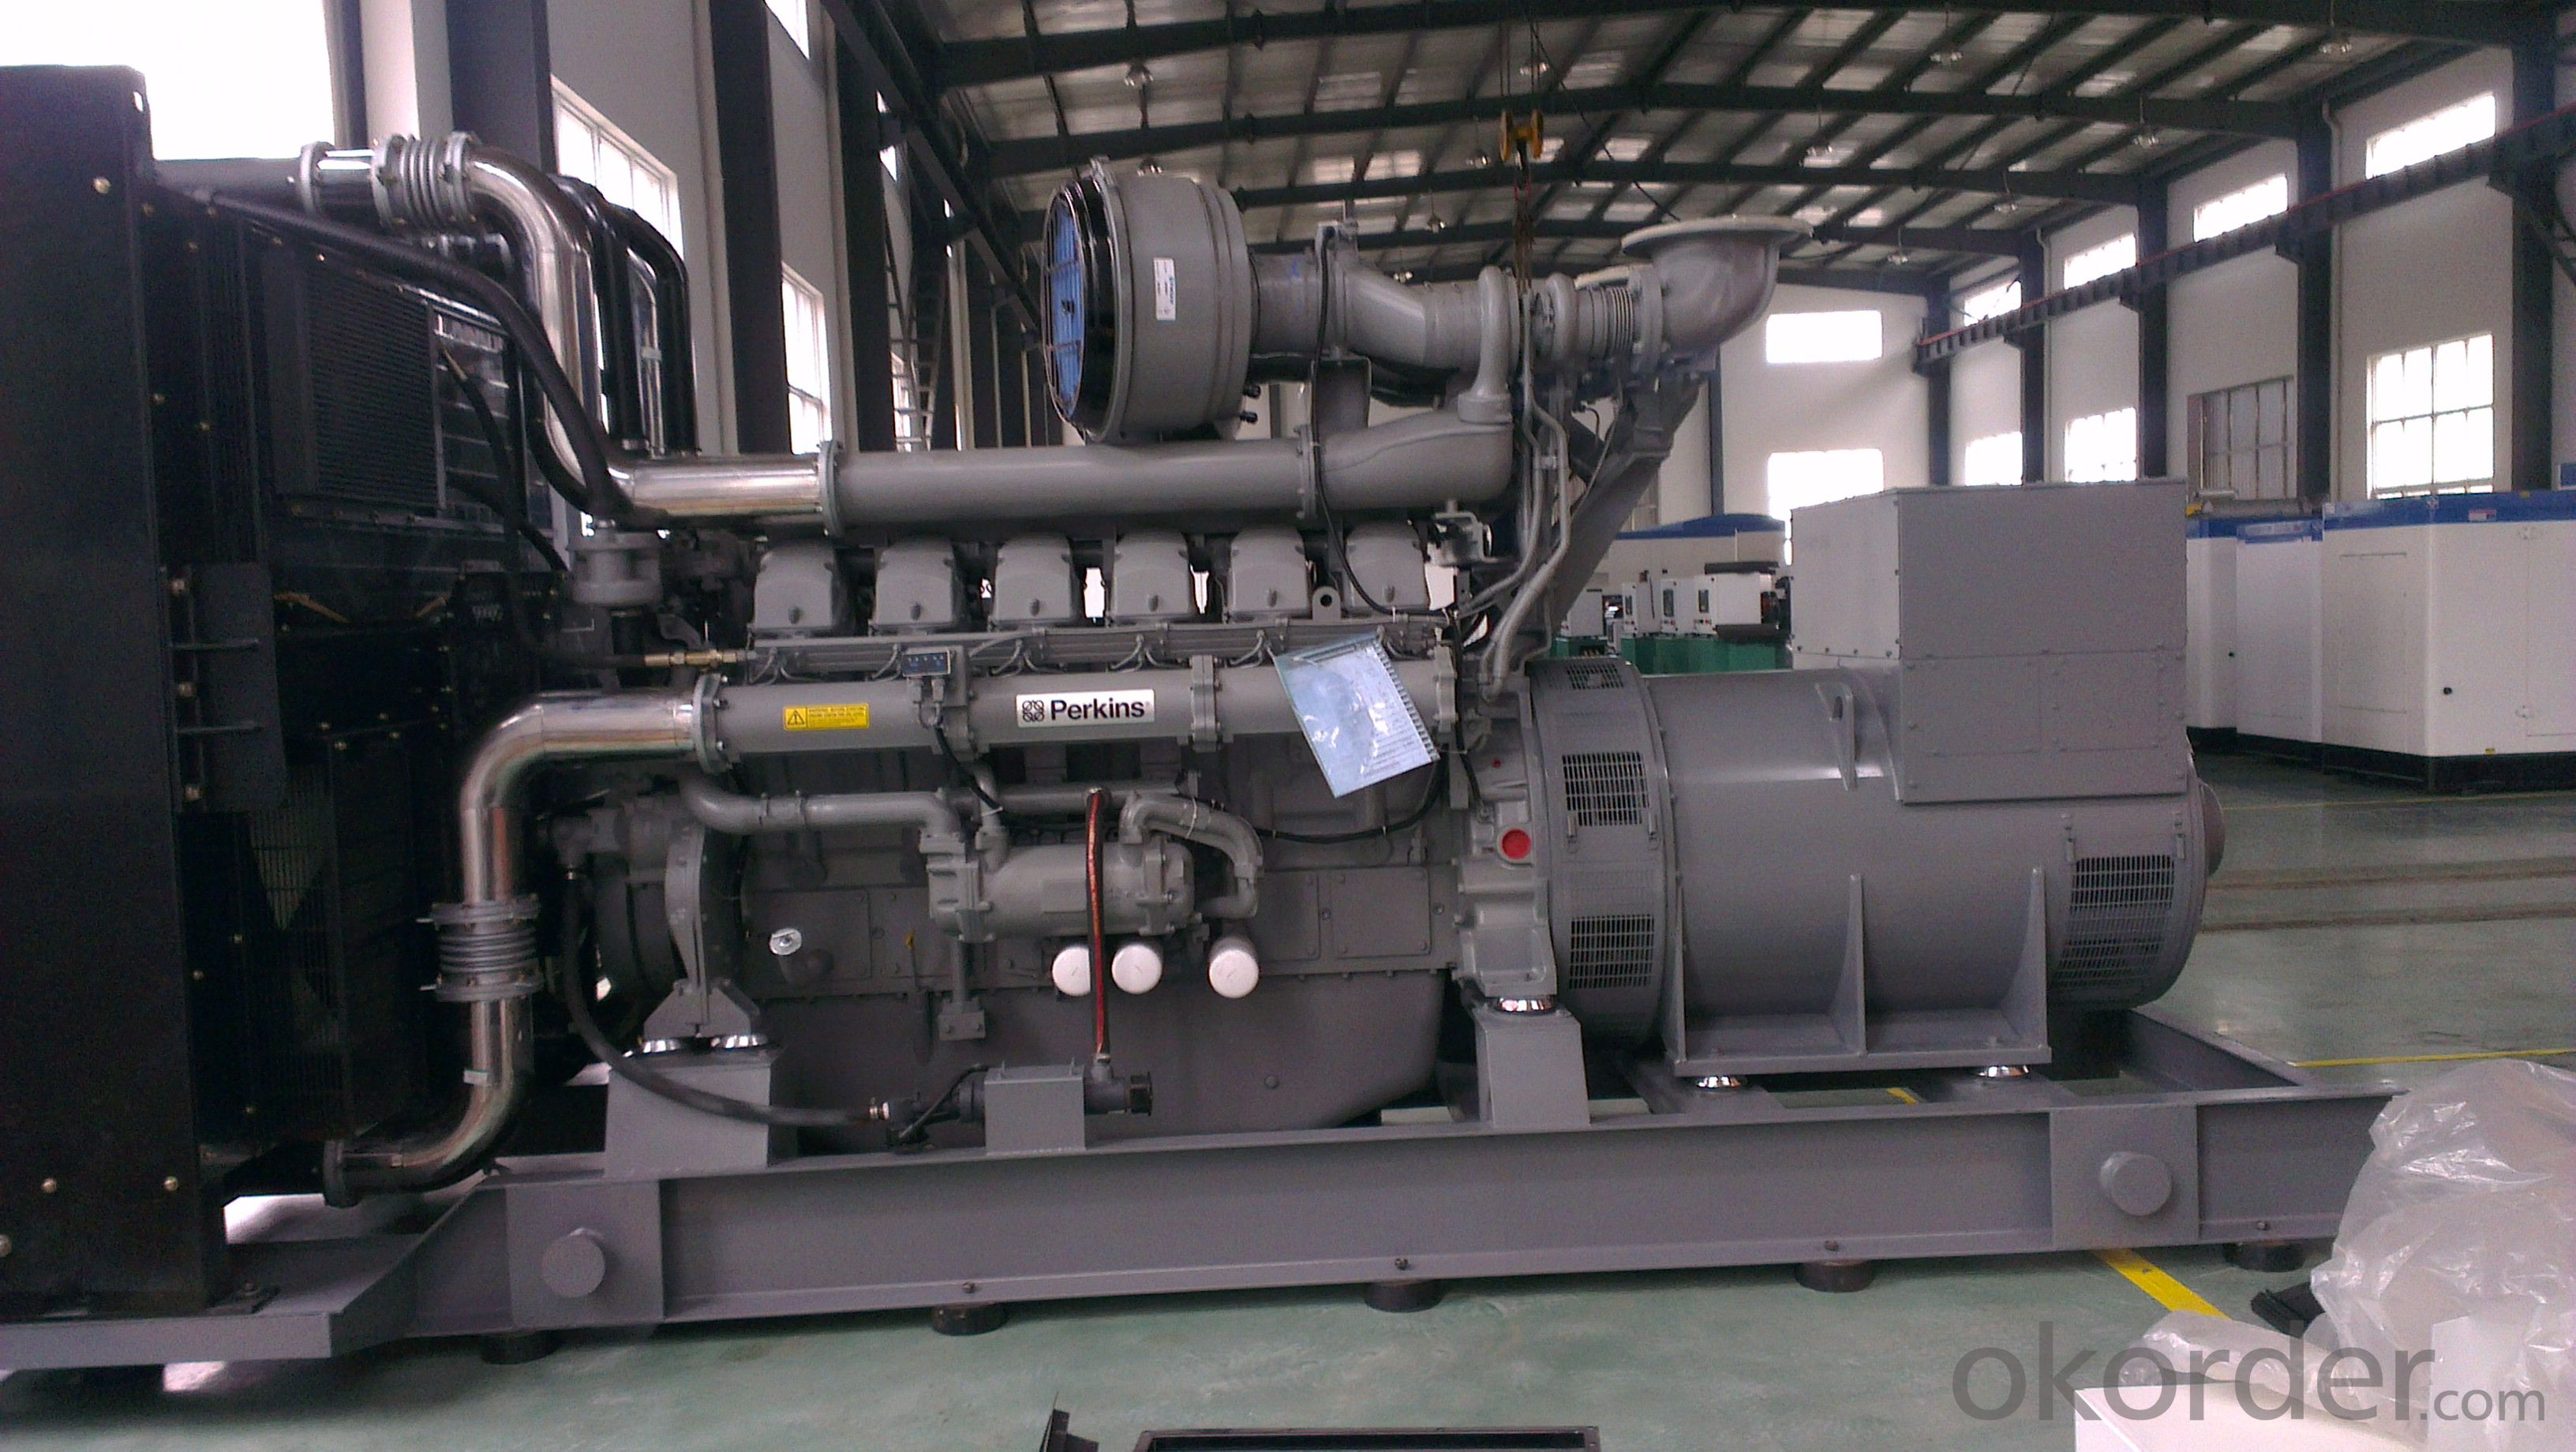 Soundproof Genset Diesel Generator With Perkins Engine20kva